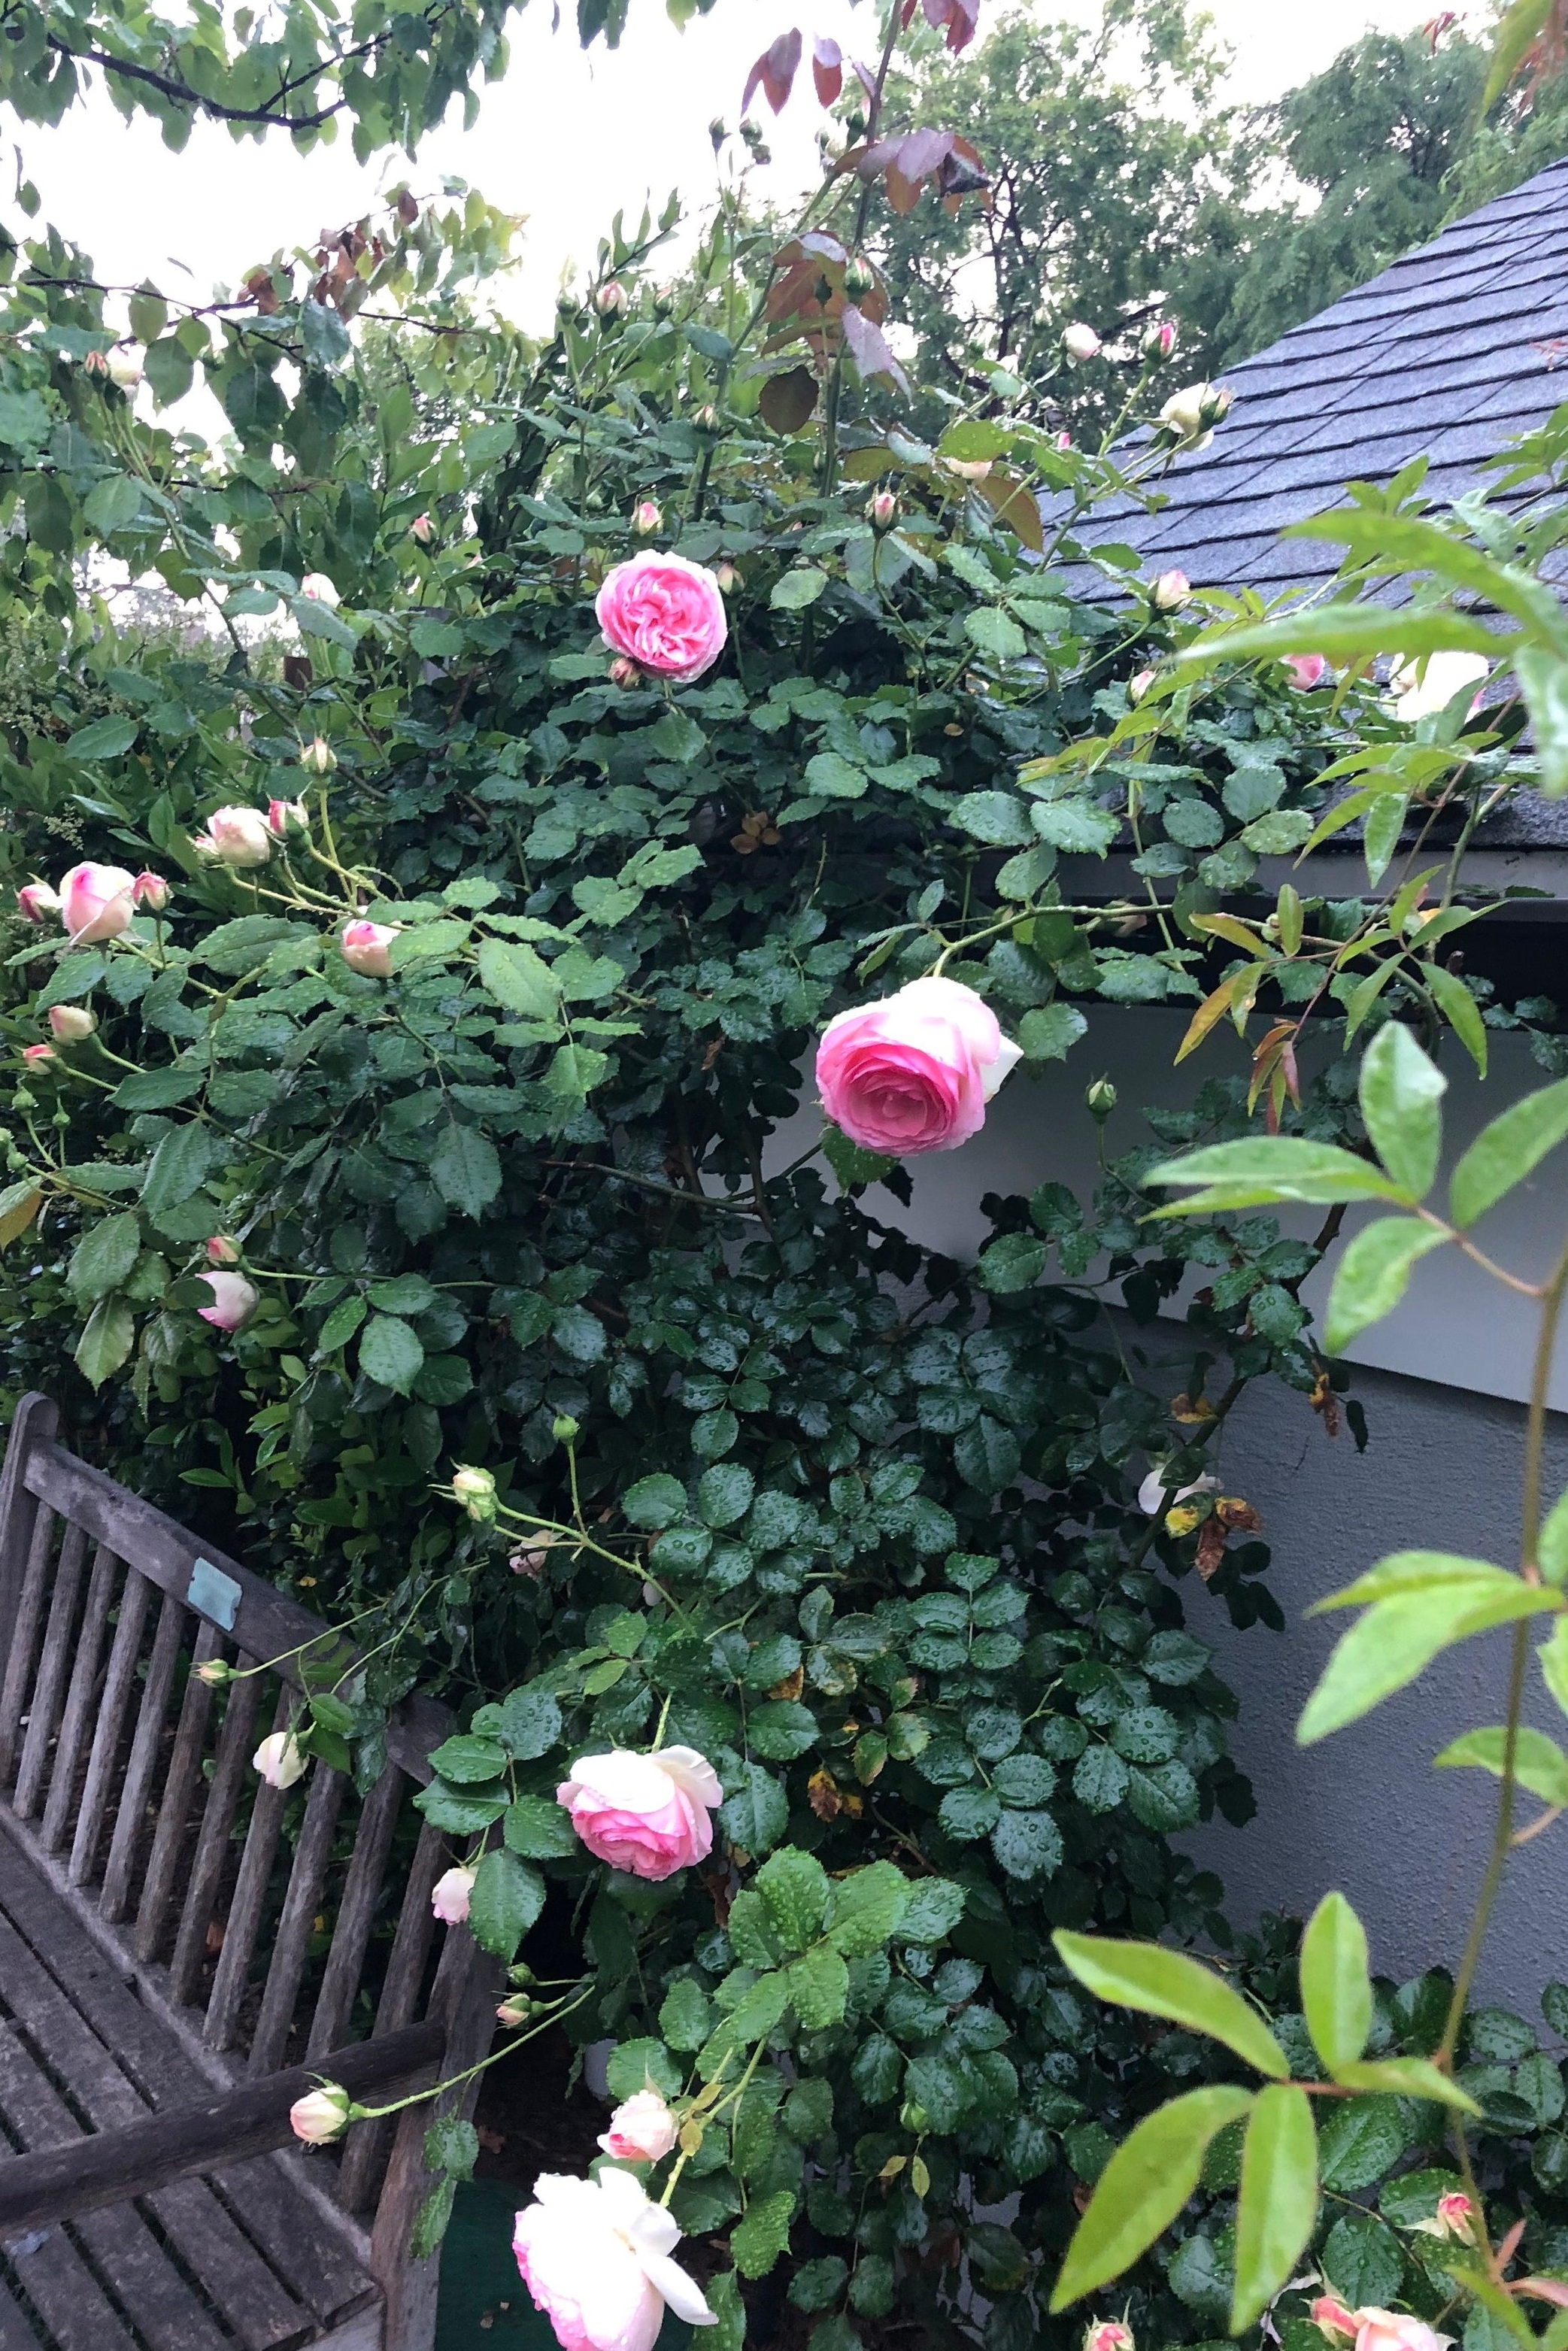 Climbing roses are nature's great disguisers - Roses climb here to cover a roof